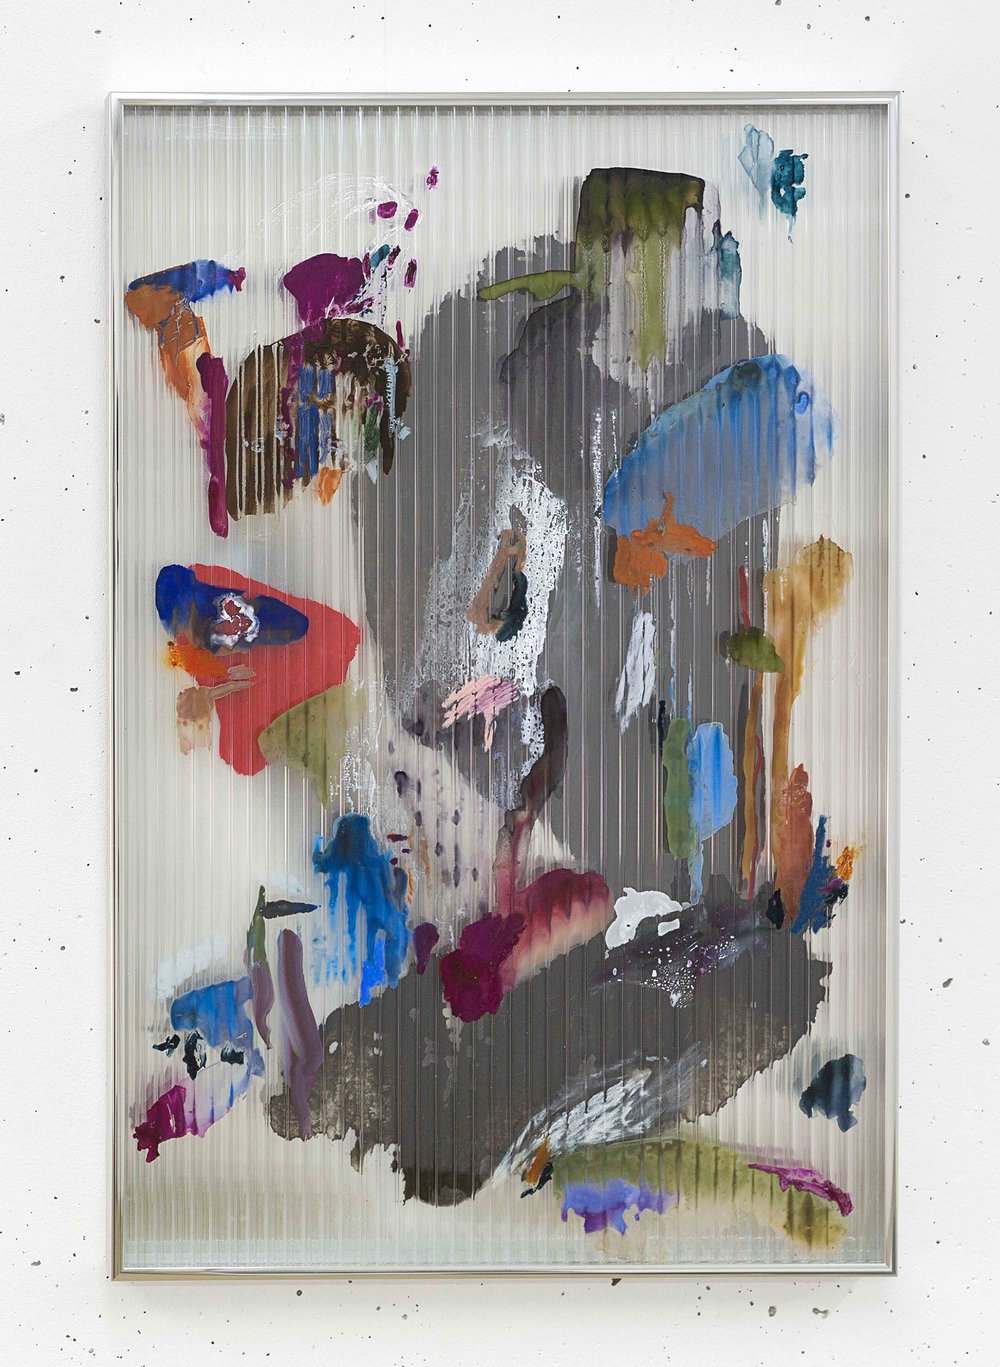 Chaos 1 , 2017 gouache, ink, acrylic, oil, mastic on polycarbonate, mirror, aluminium frame 67 x 44,5 x 2,5 cm  photo © Romain Darnaud